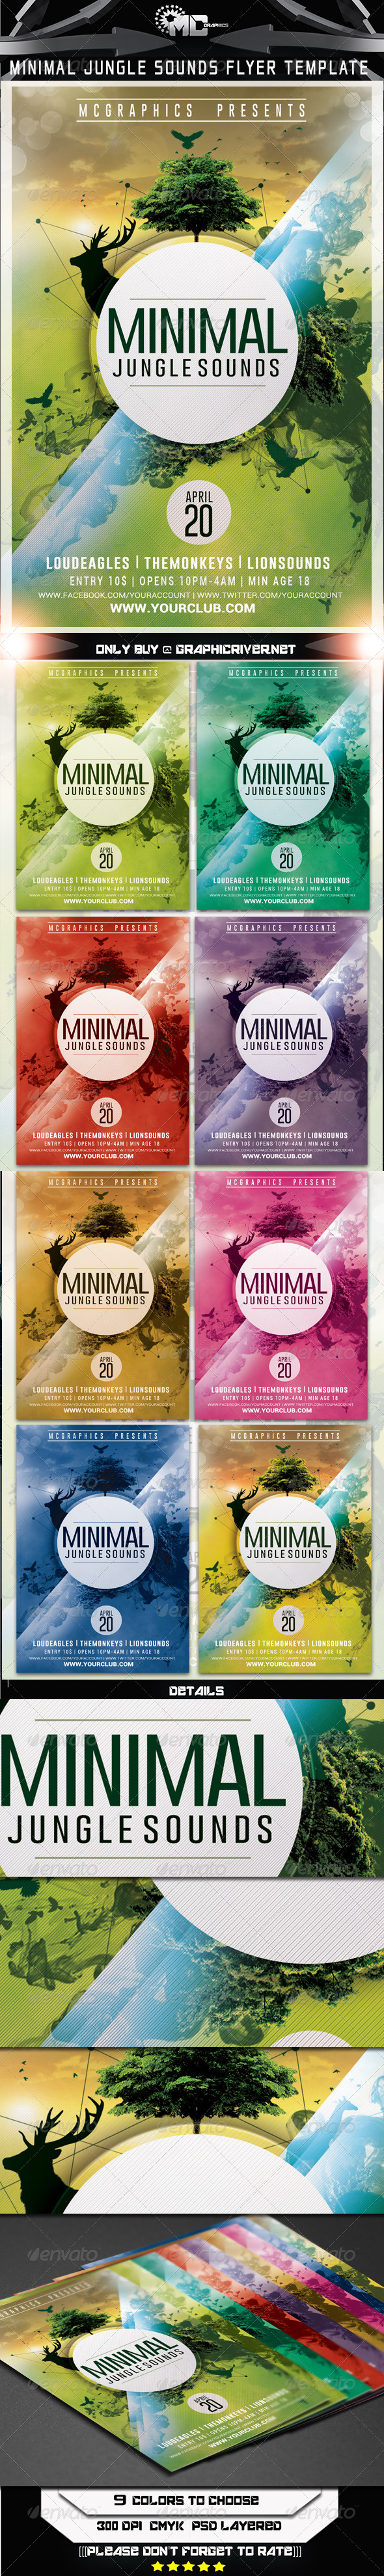 GraphicRiver Minimal Jungle Sounds Flyer Template 7415202